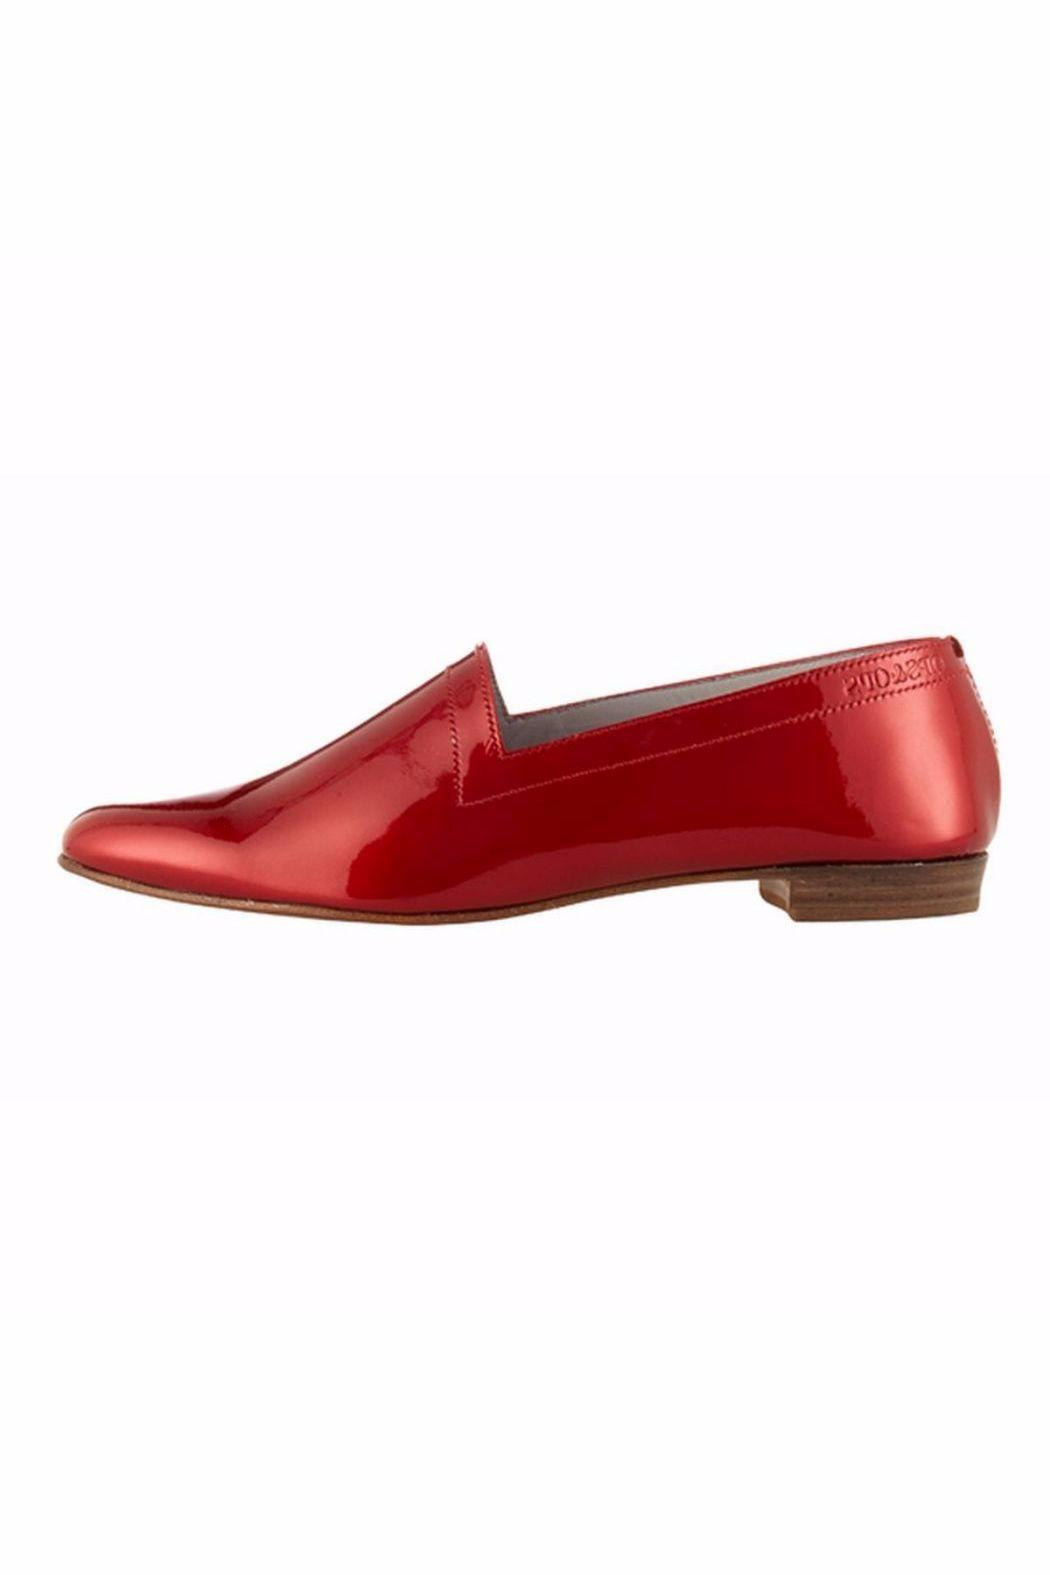 OPS&OPS Red Patent-Leather Shoe - Main Image